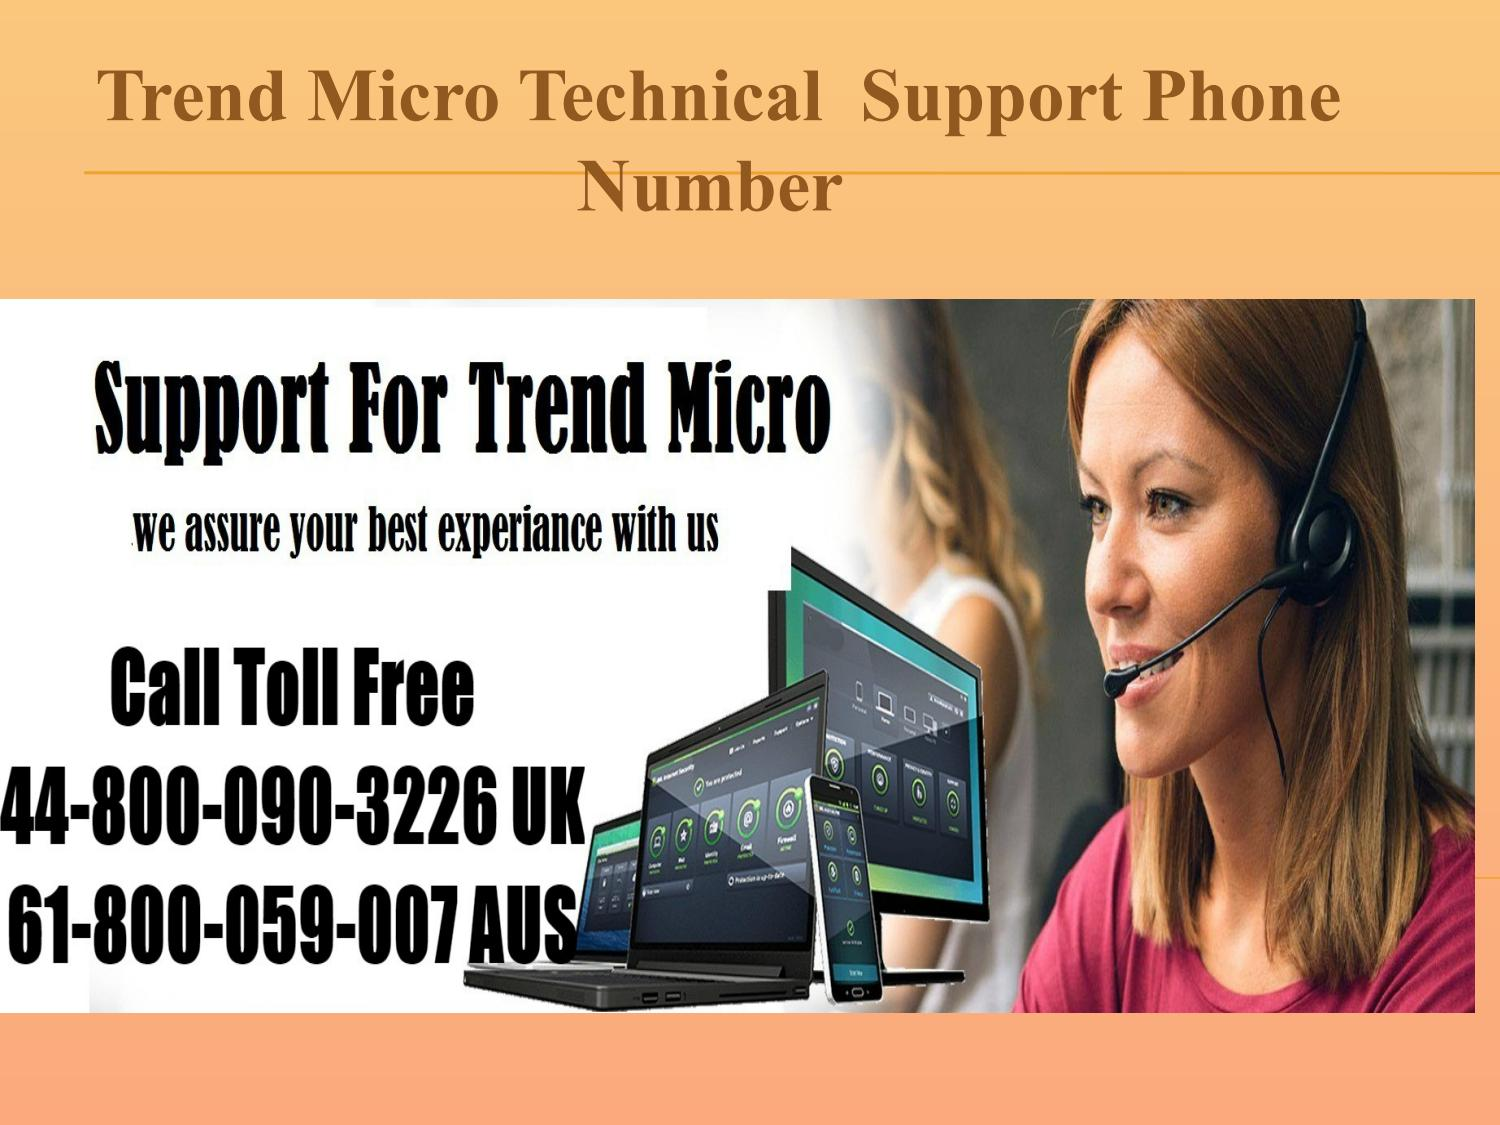 Trend micro technical support phone number by oscarwed2011